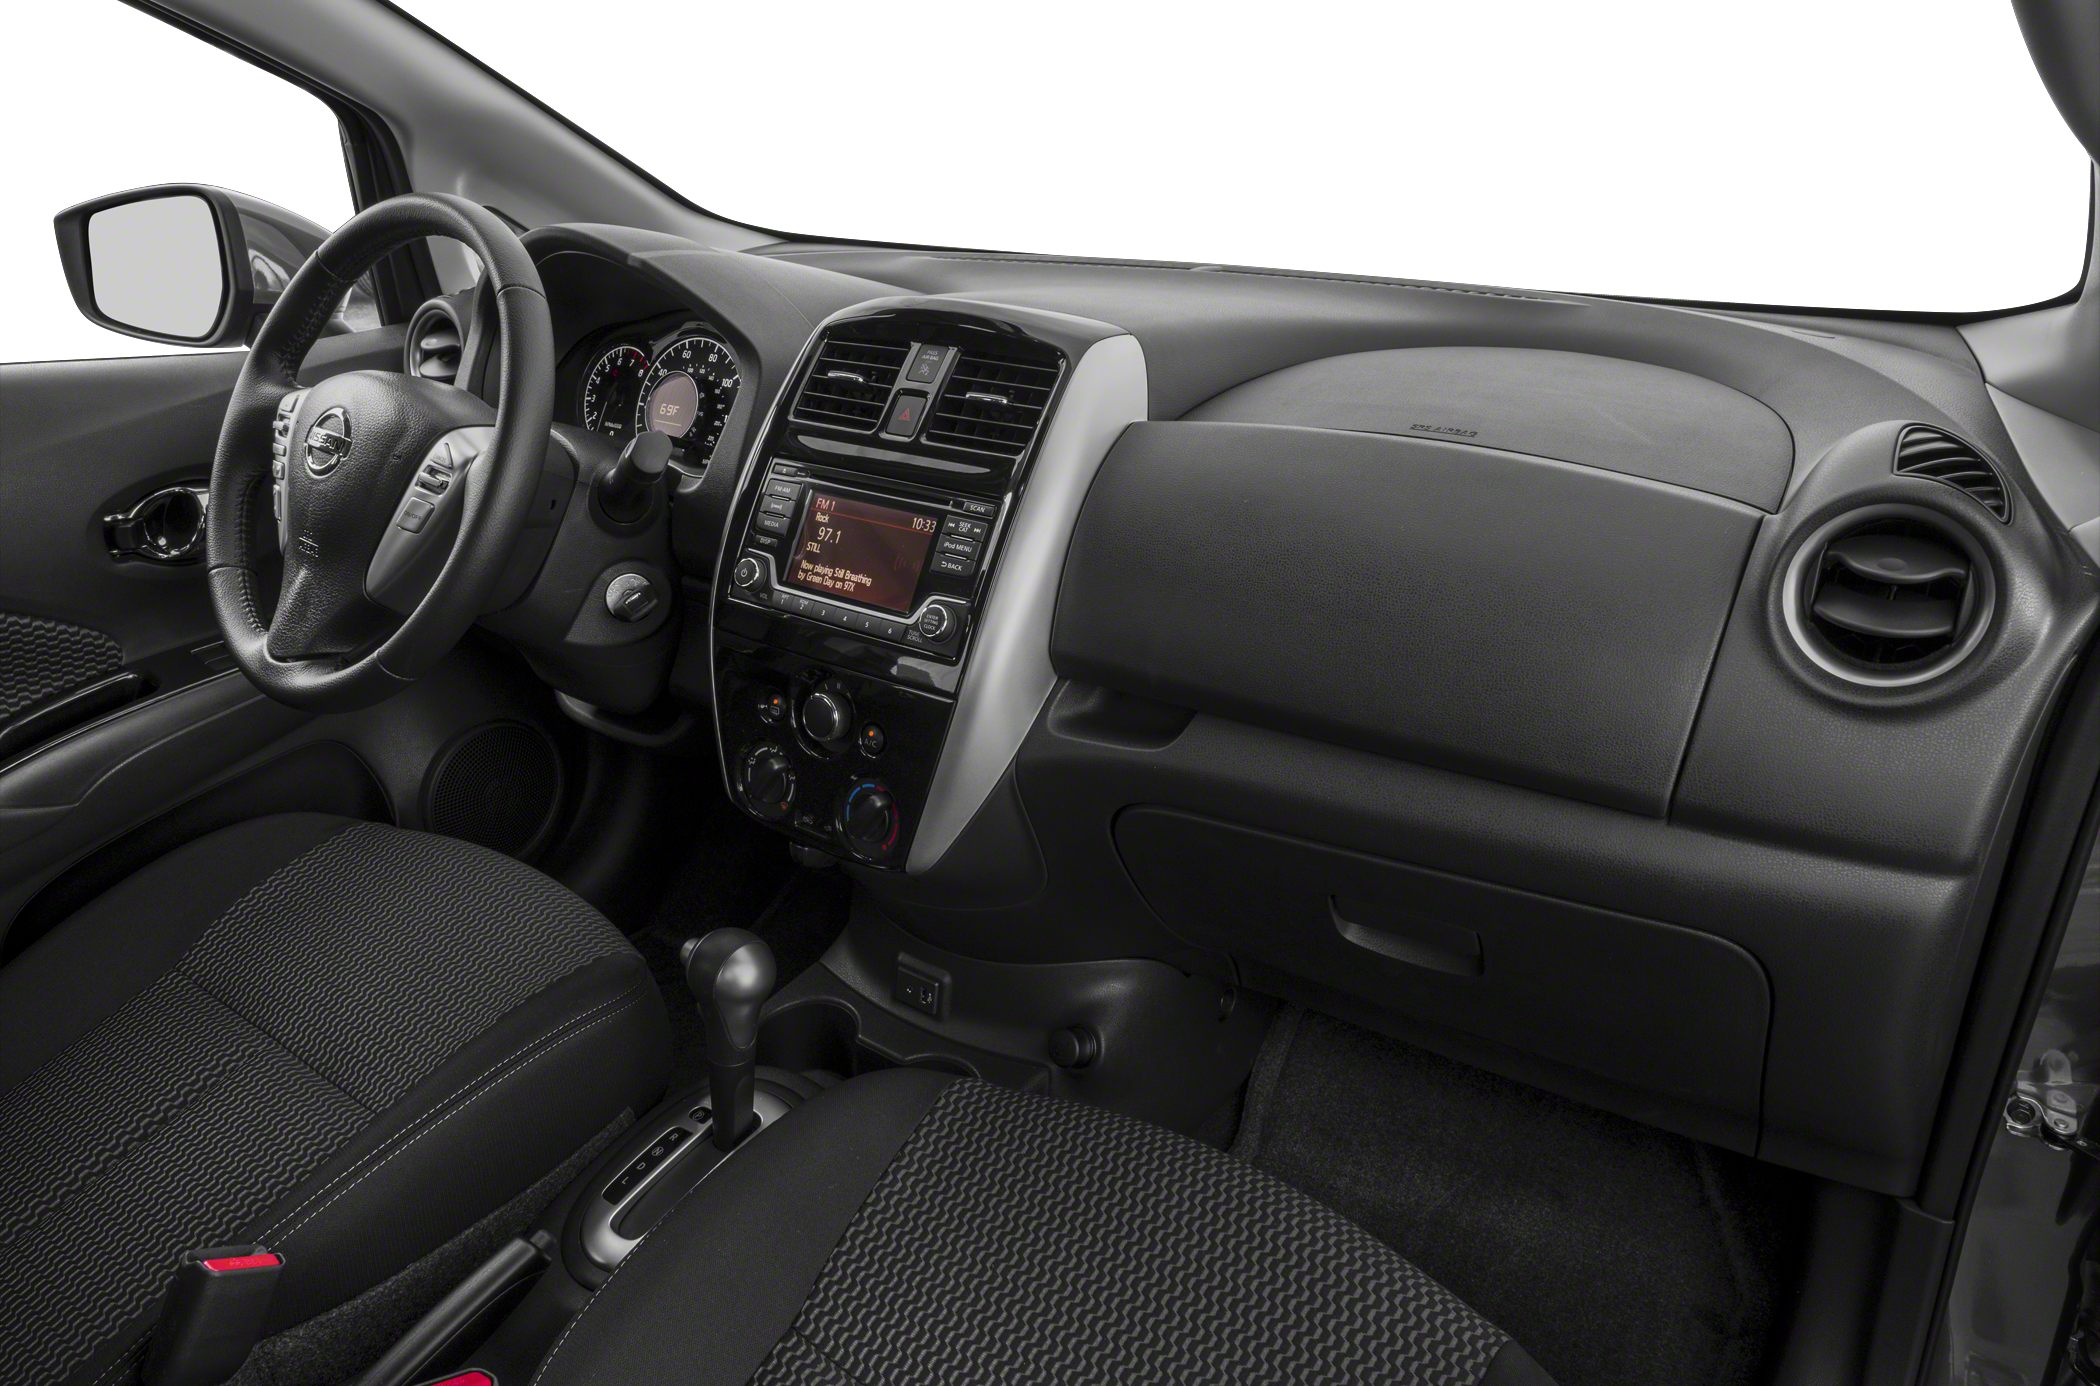 2018 Nissan Versa Note Pictures & Photos - CarsDirect